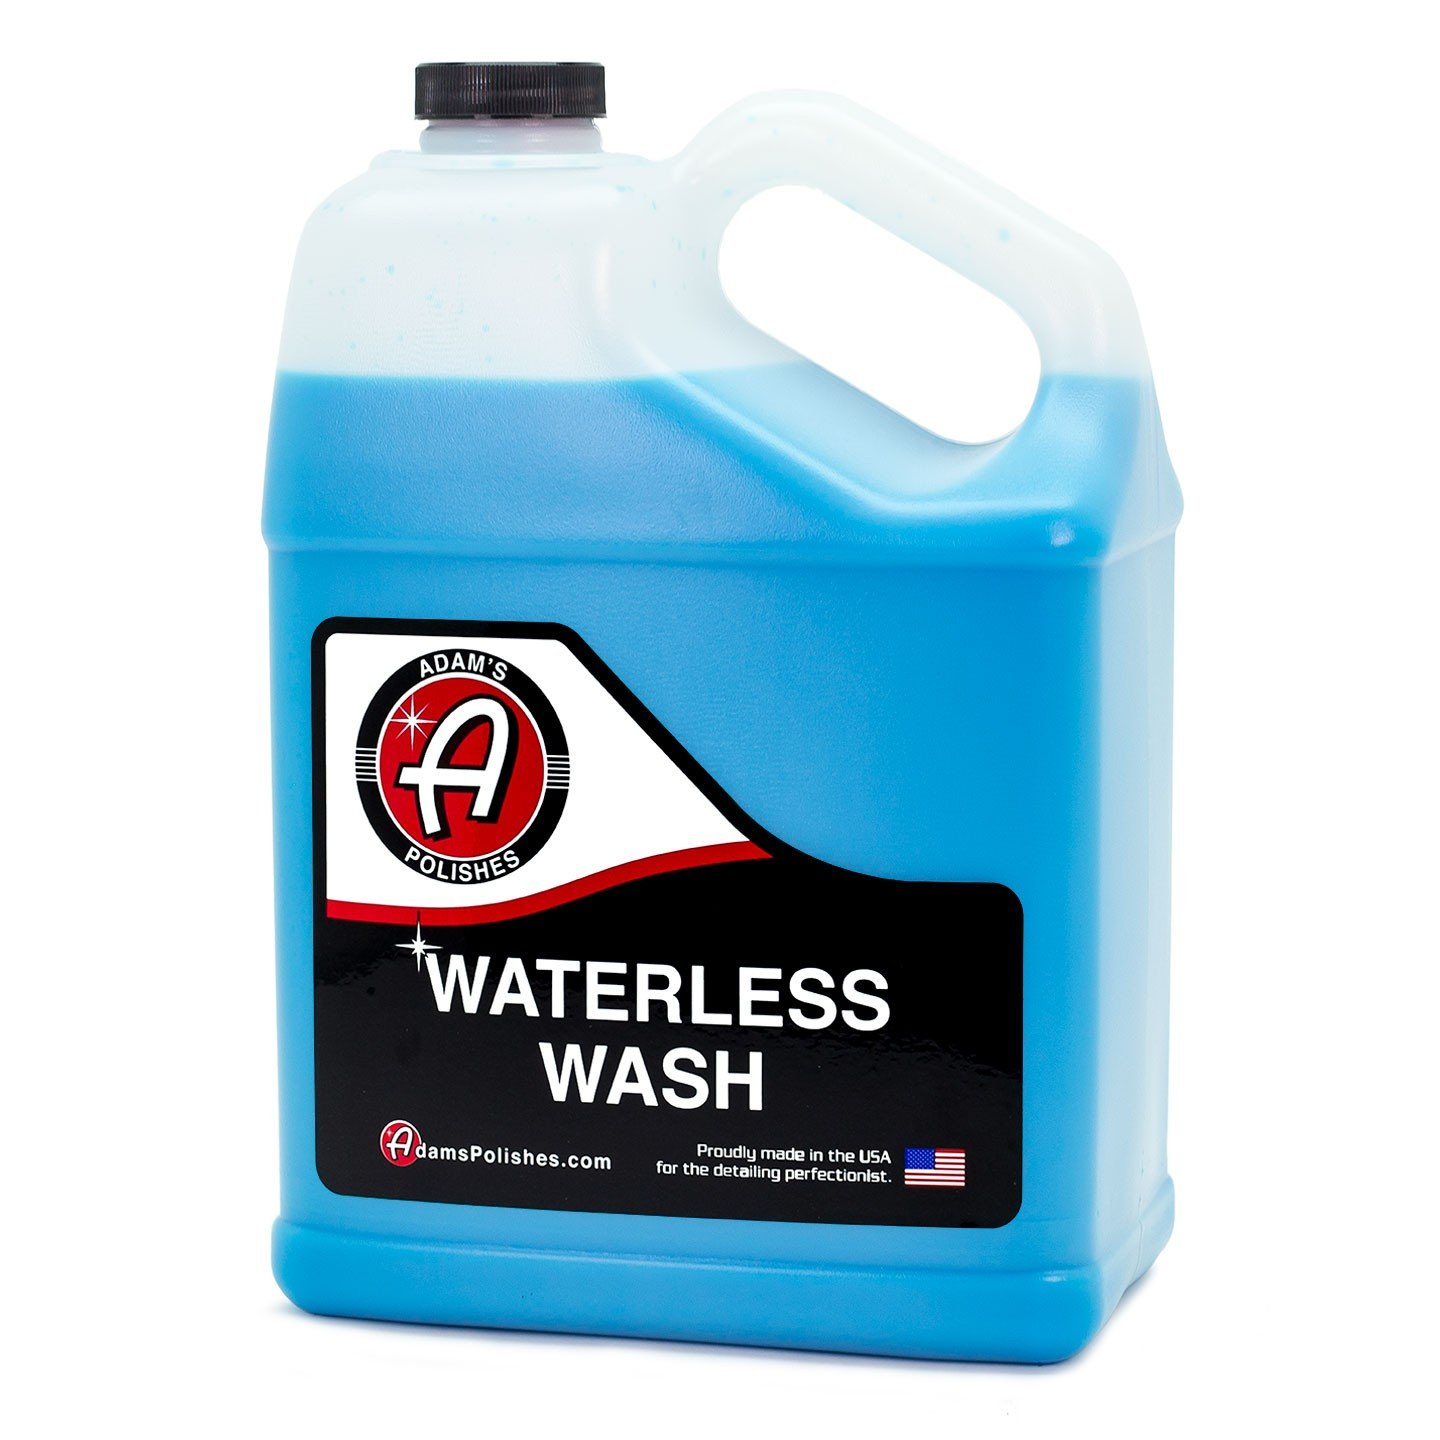 Adam's Waterless Wash Gallon - Made With Advanced Emulsifiers and Special Lubricants - Eco-Friendly Waterless Car Washing With No Hoses, No Water, No Messes